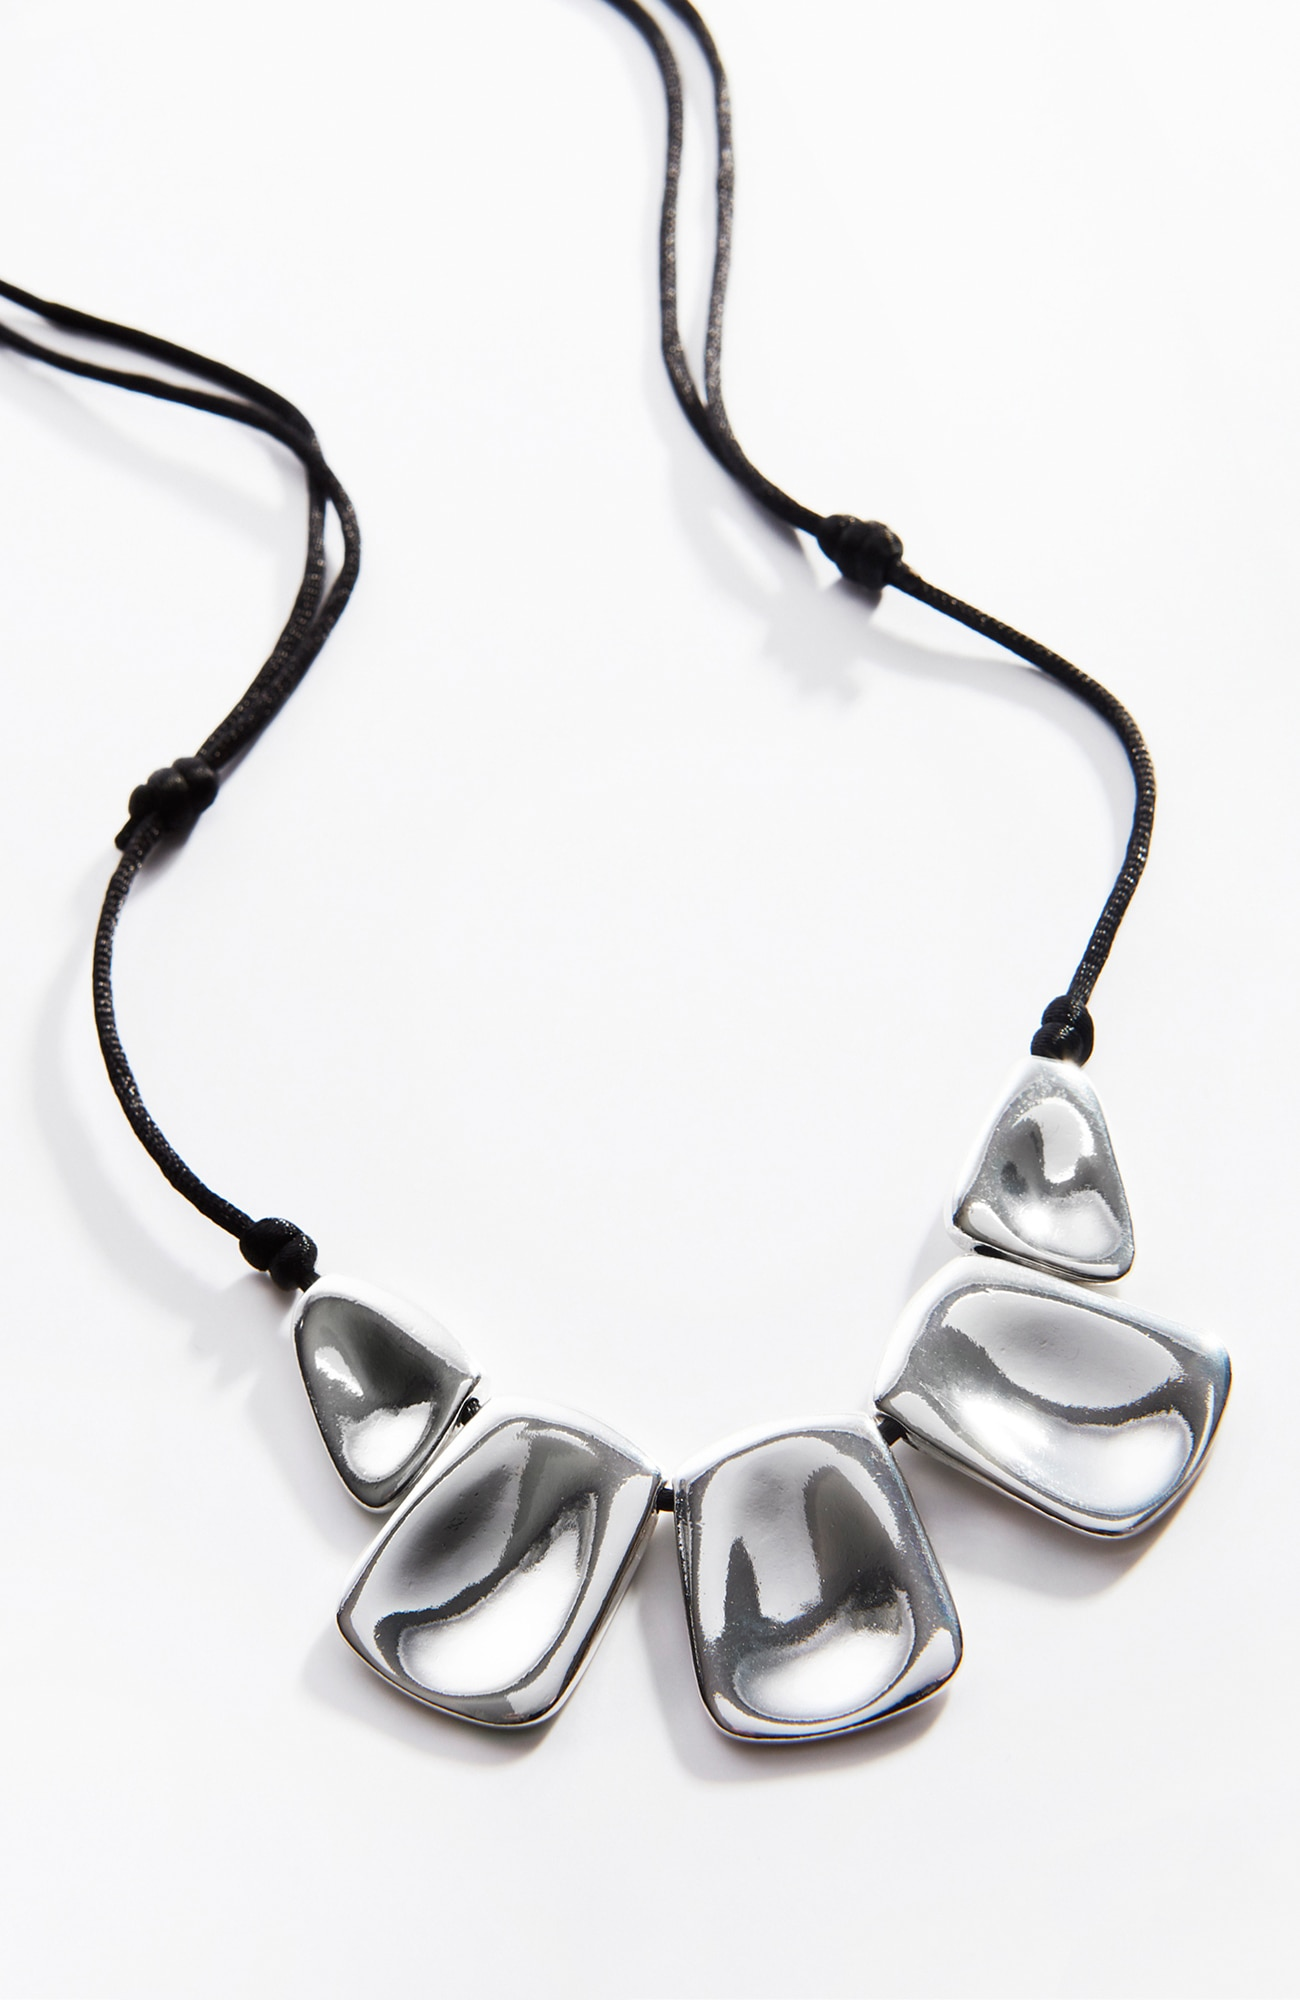 sculpted metal necklace